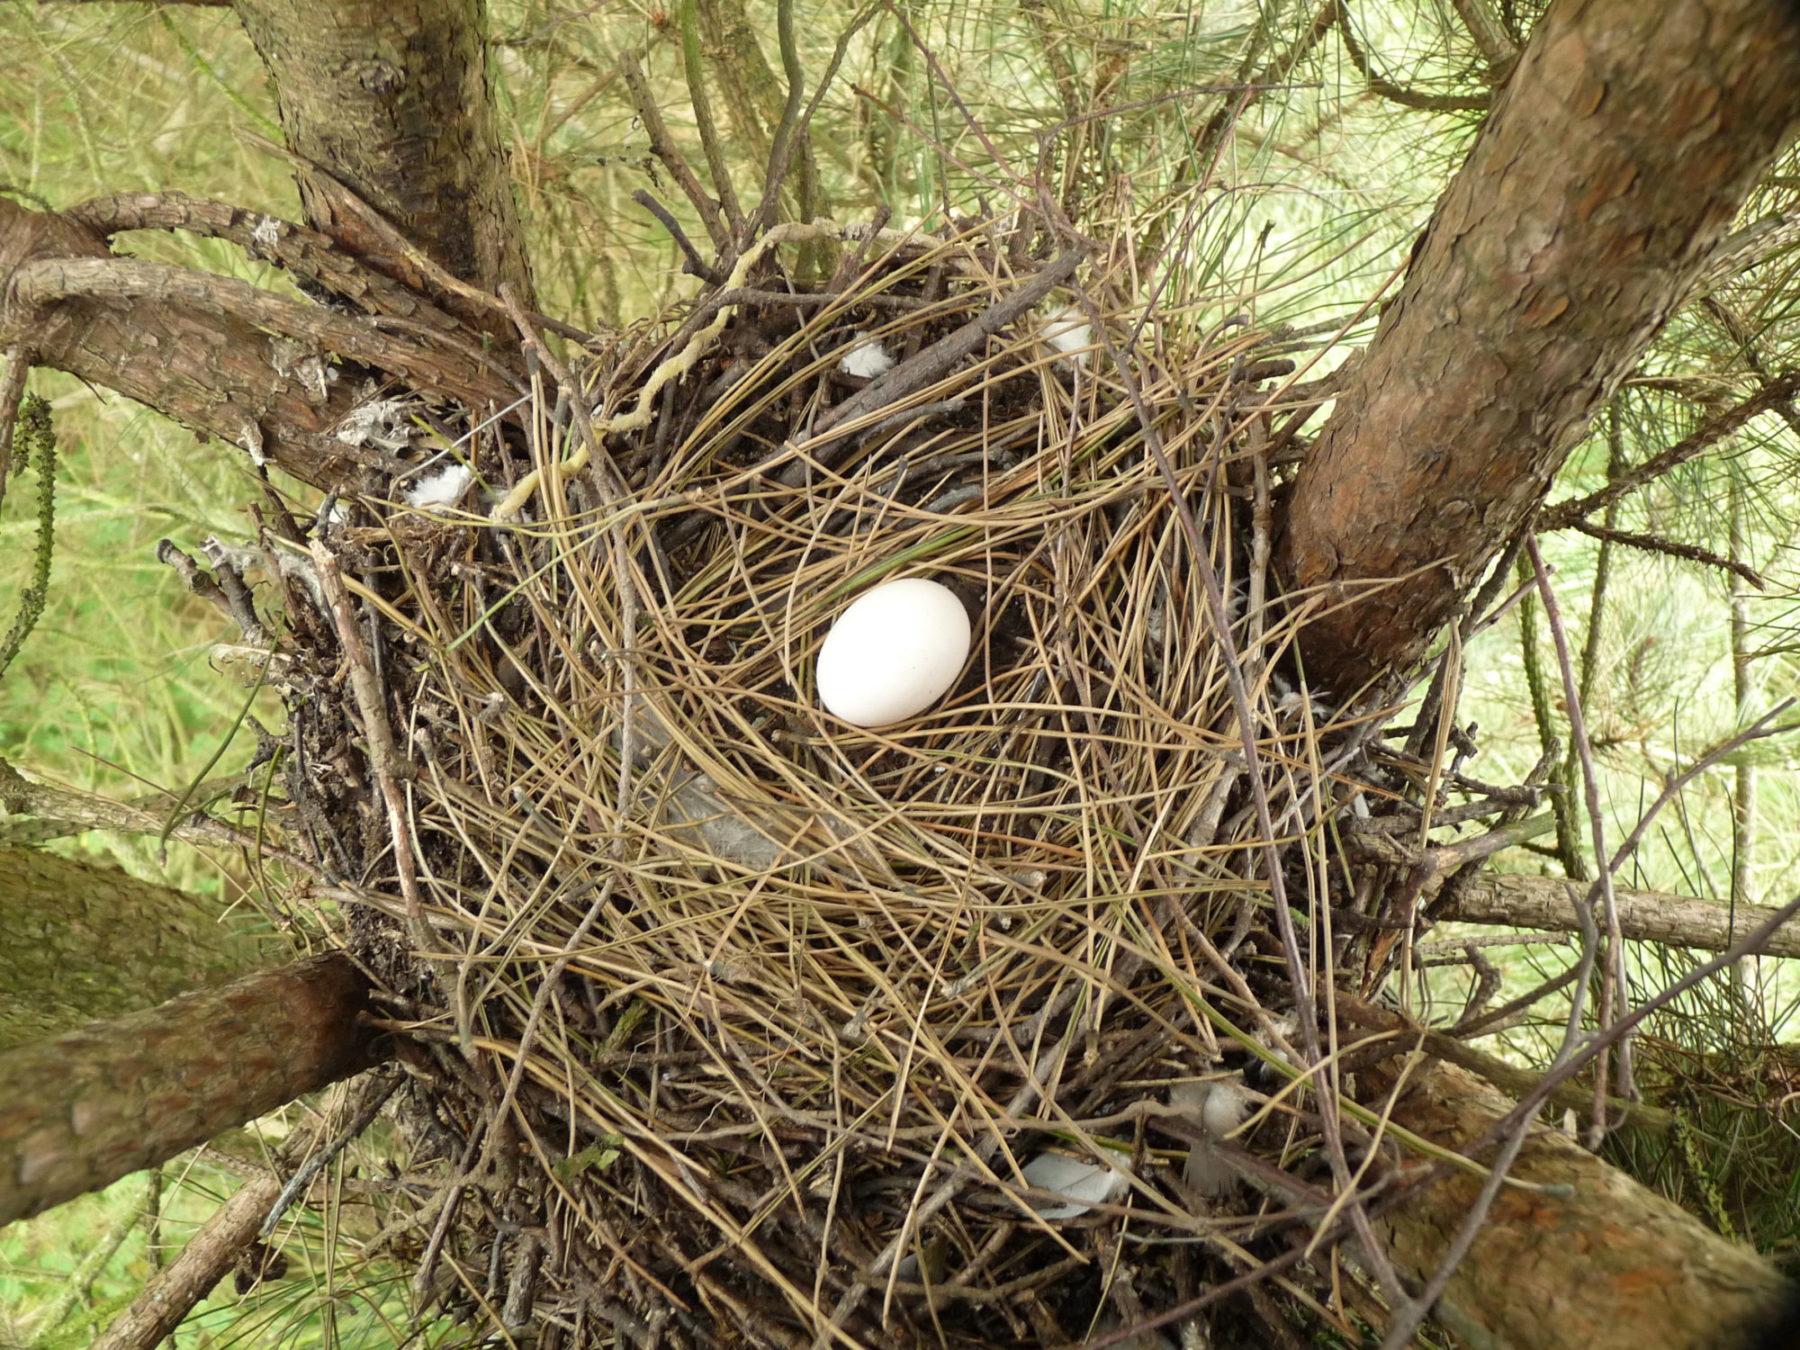 Wood_Pigeon_Nest_30-08-10_4952114824-e1479824689399.jpg